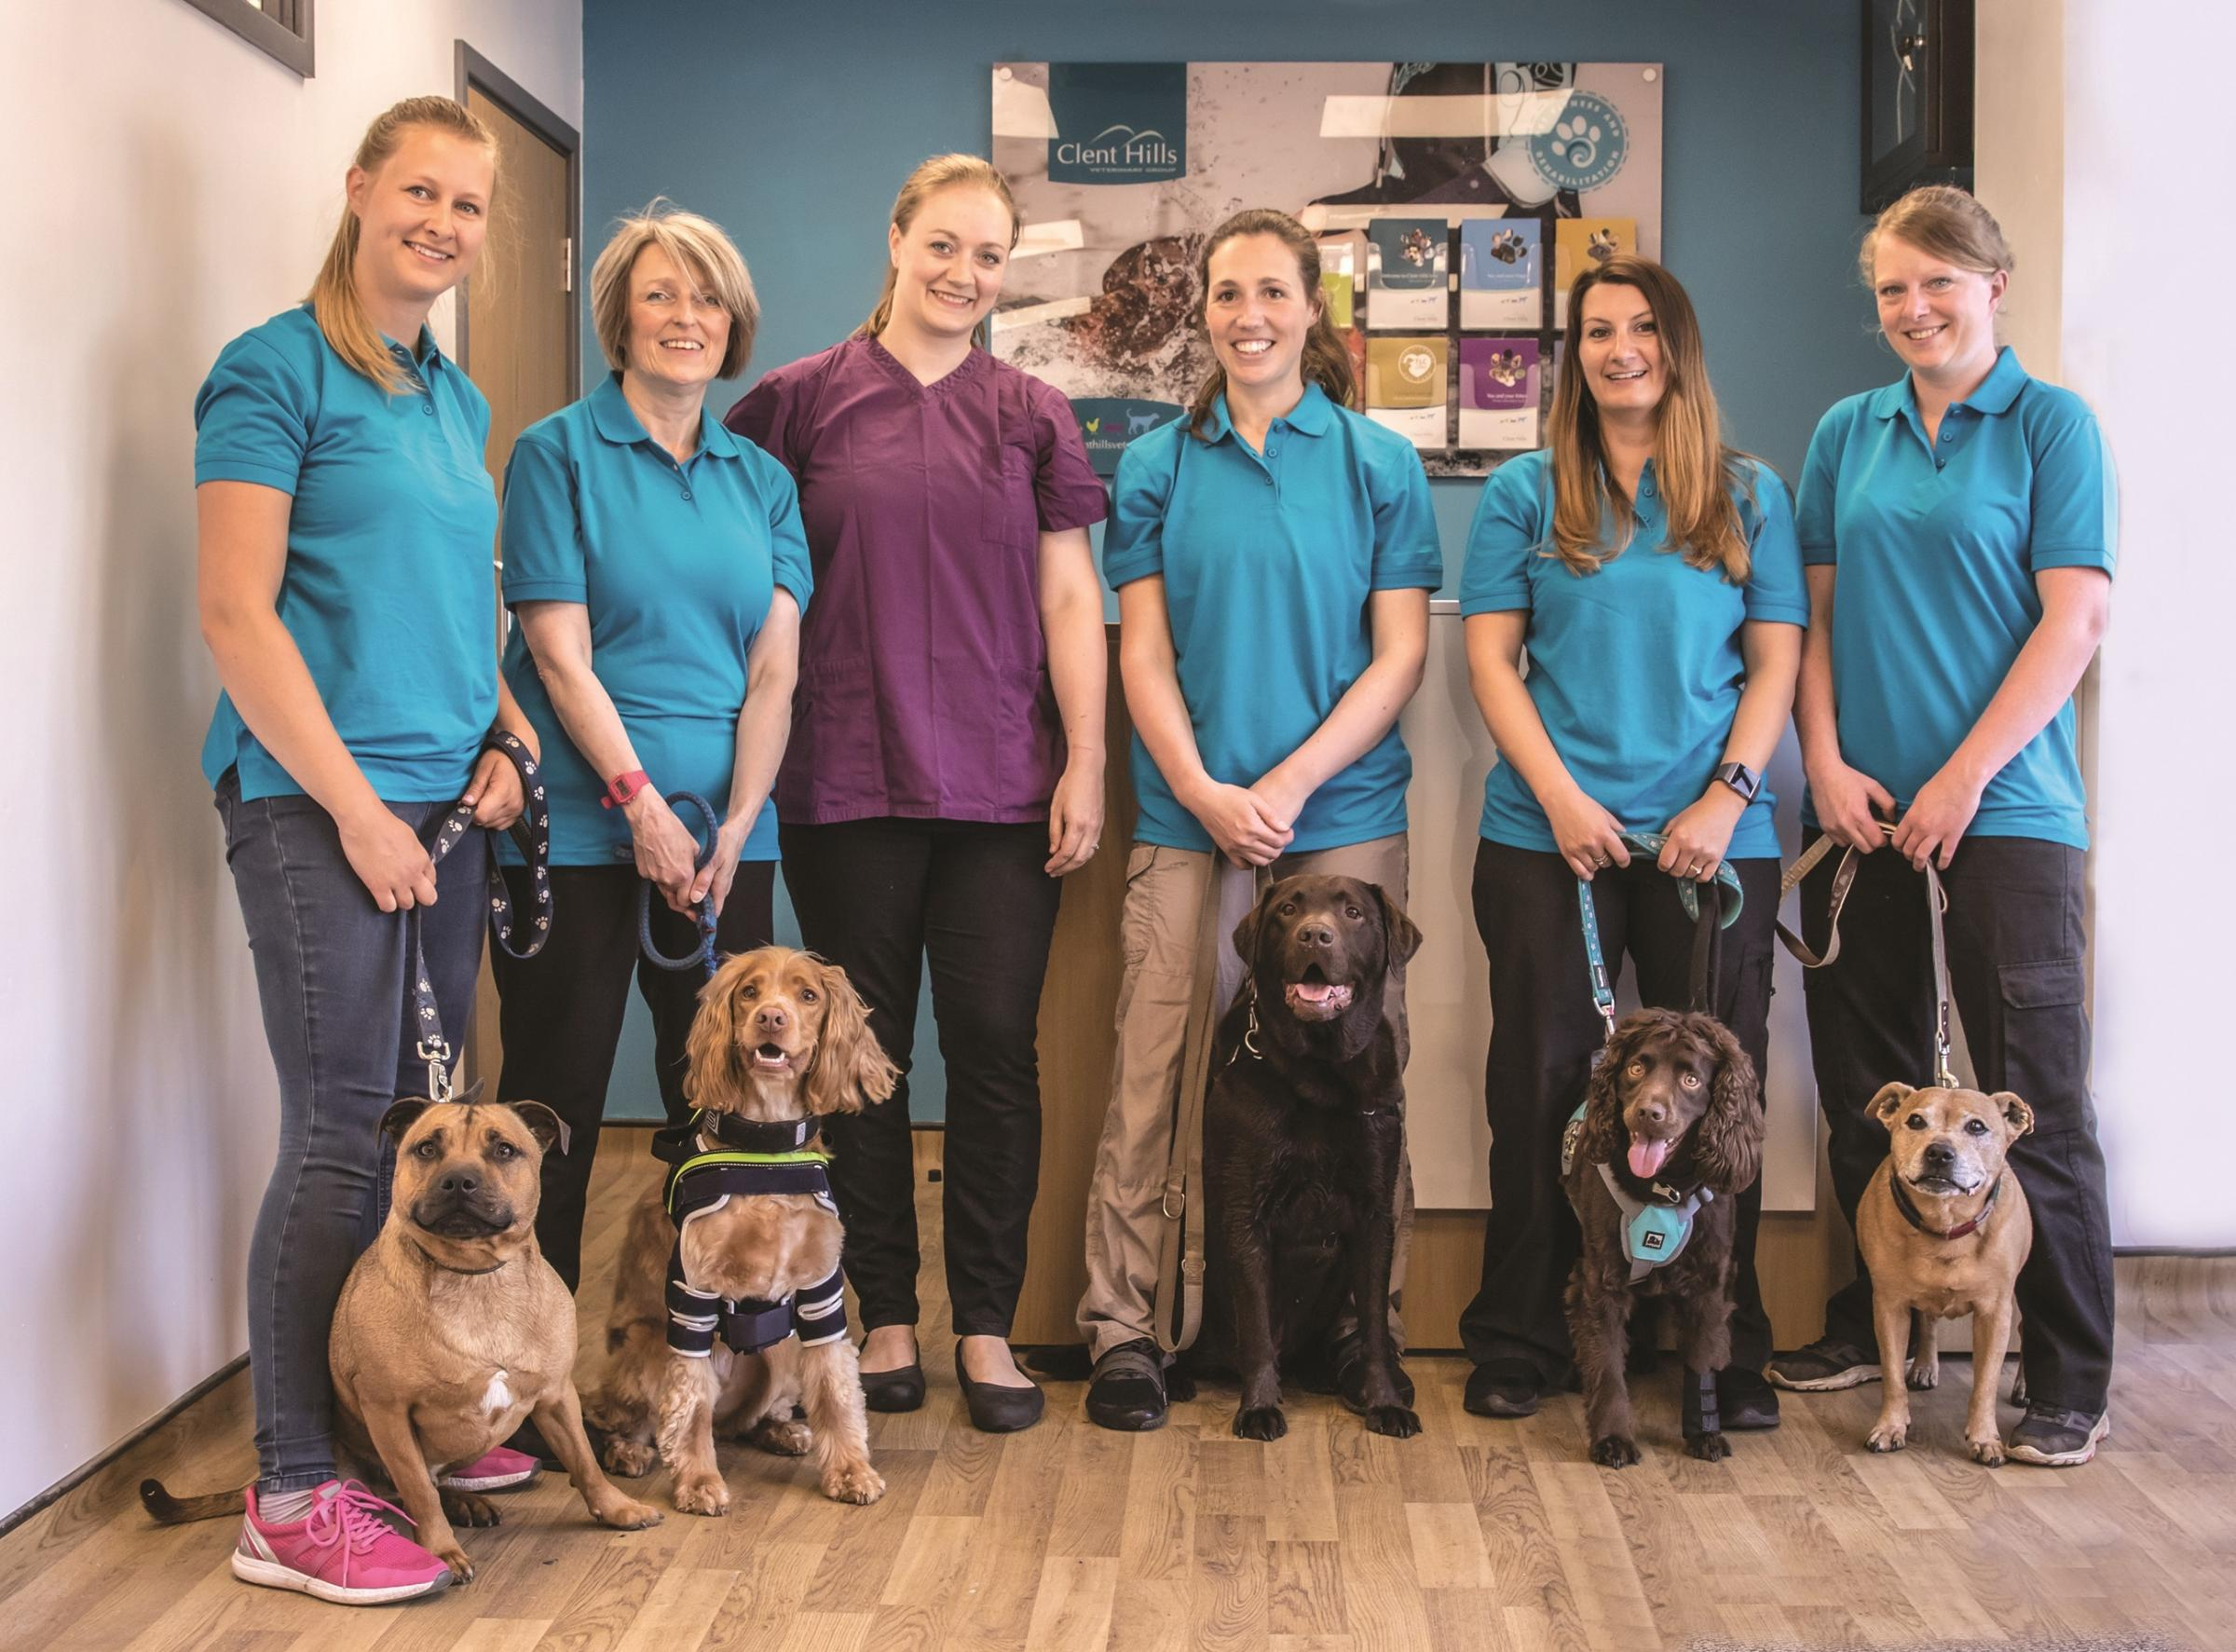 Clent Hills Vets staff and their pets. Photo by Rae Prince Photography